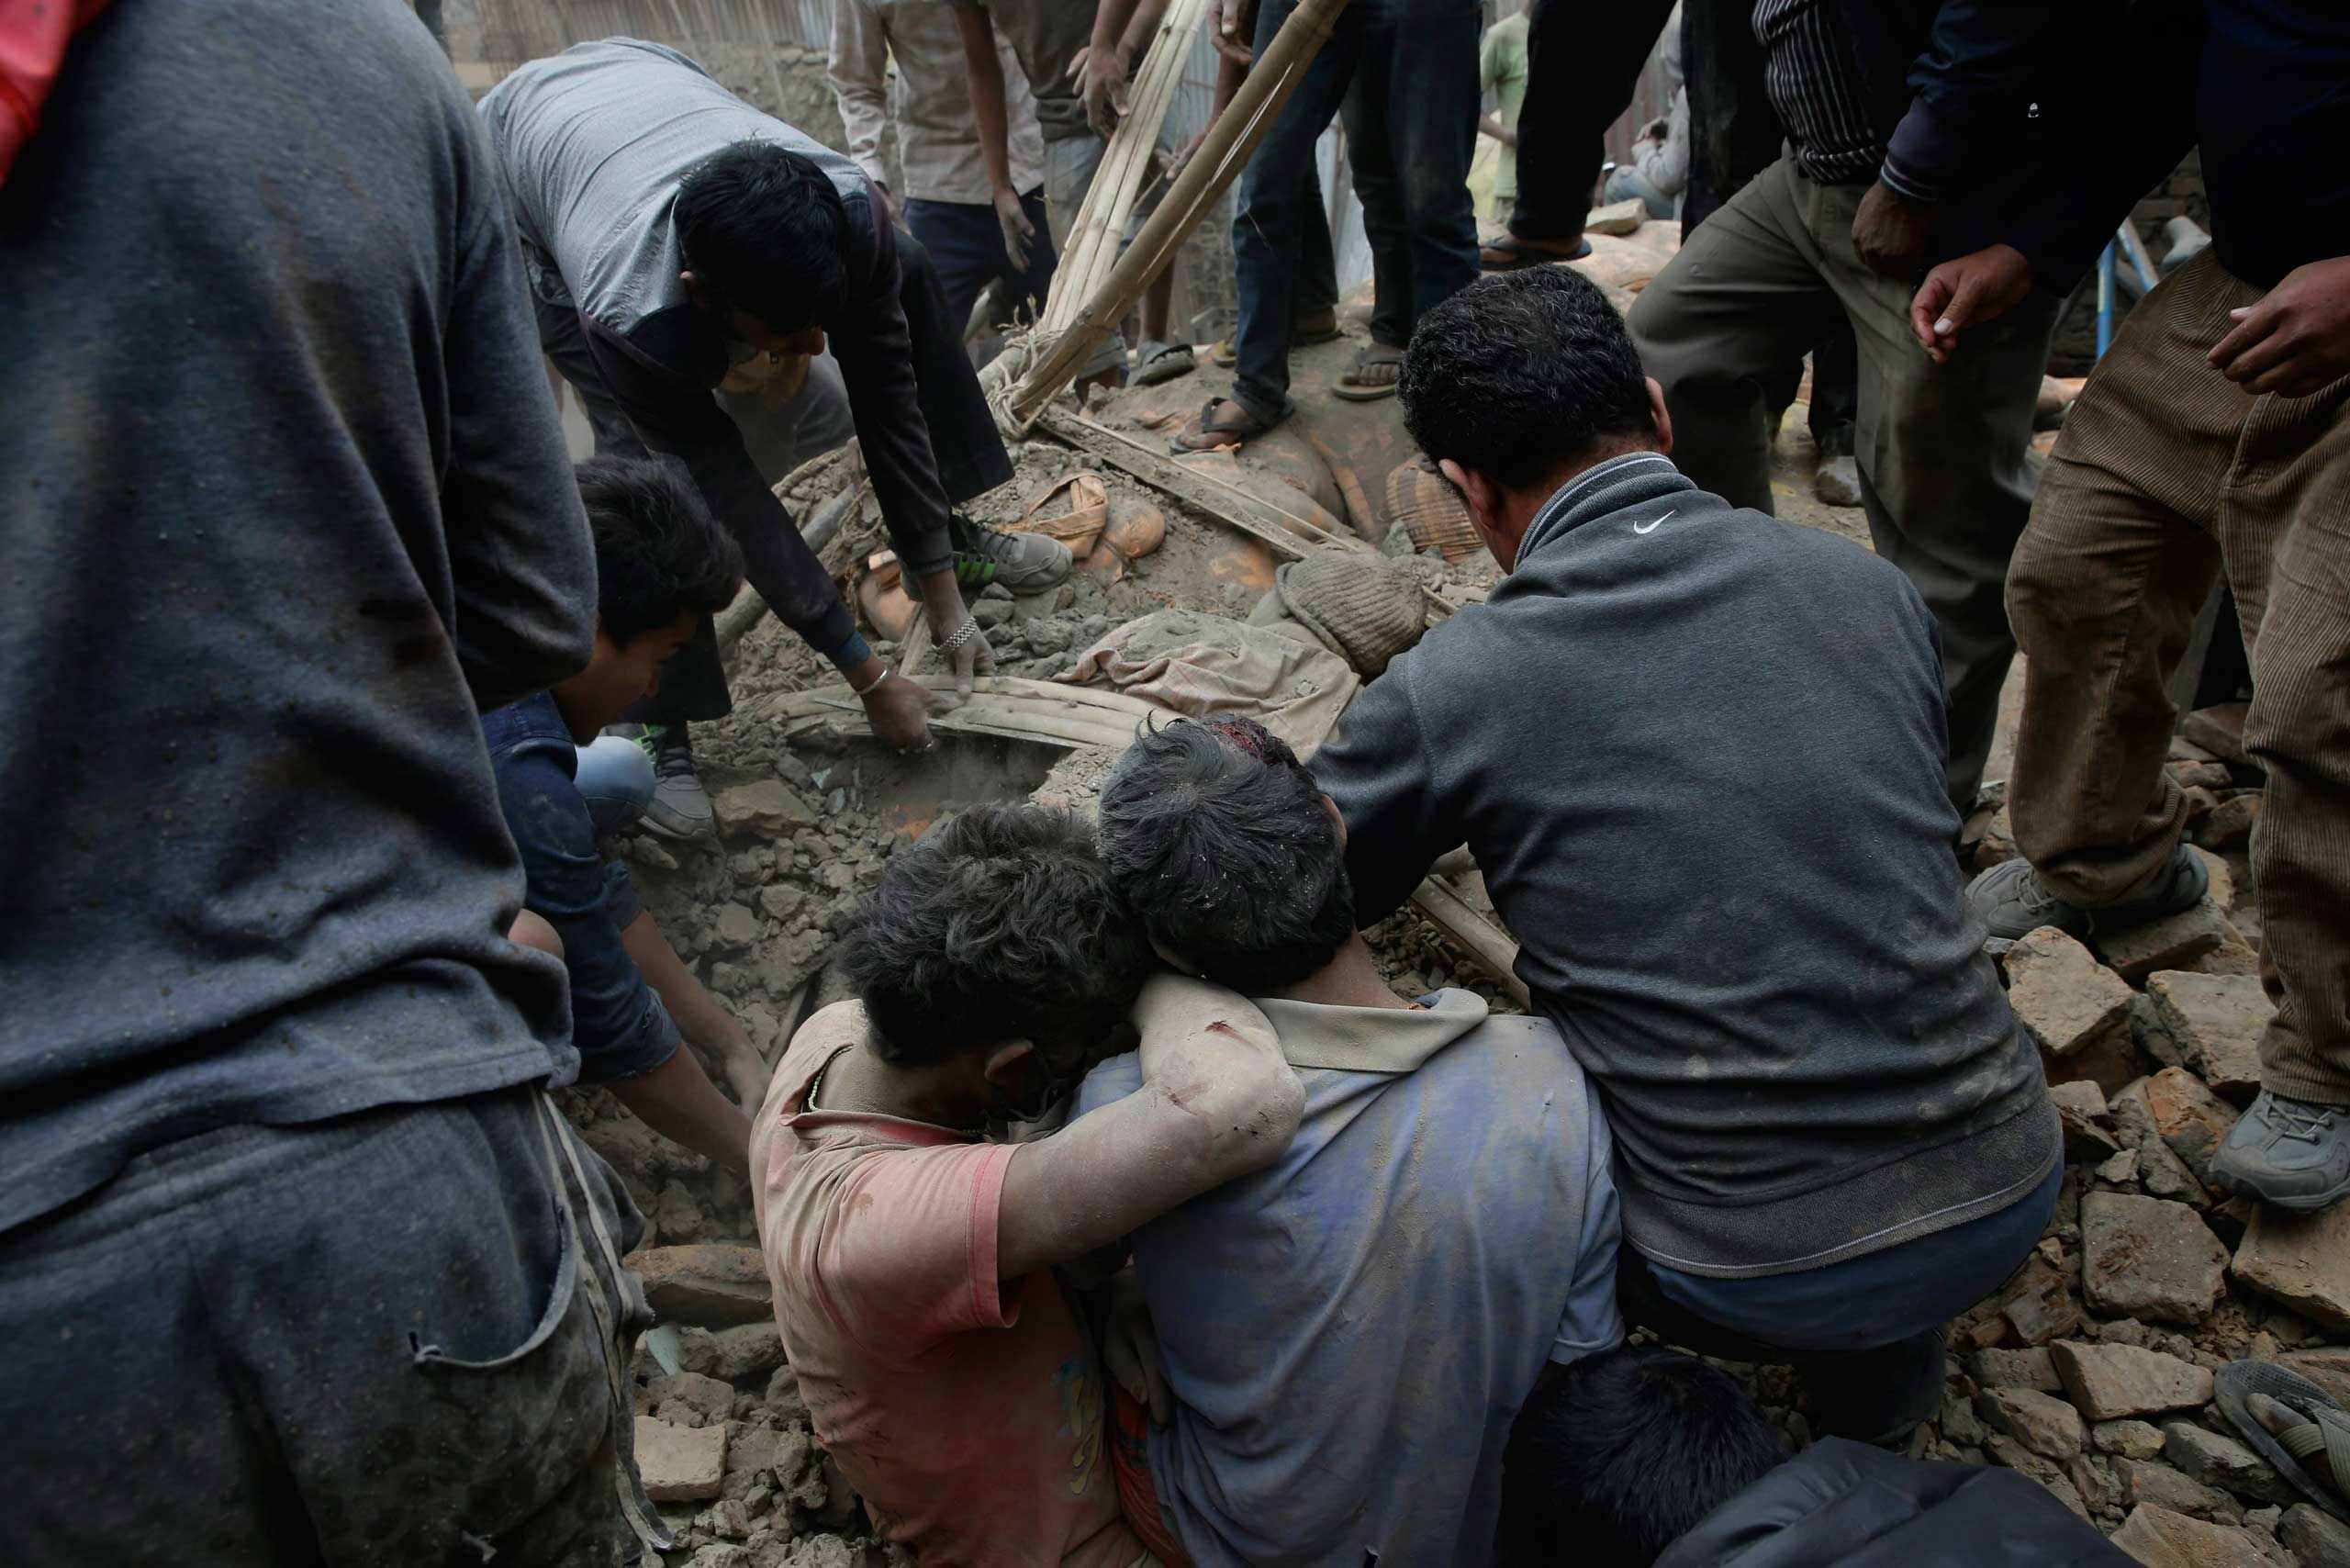 People try to dig out bodies from under the rubble of a destroyed building after an earthquake in Kathmandu, Nepal, April 25, 2015. A 7.9